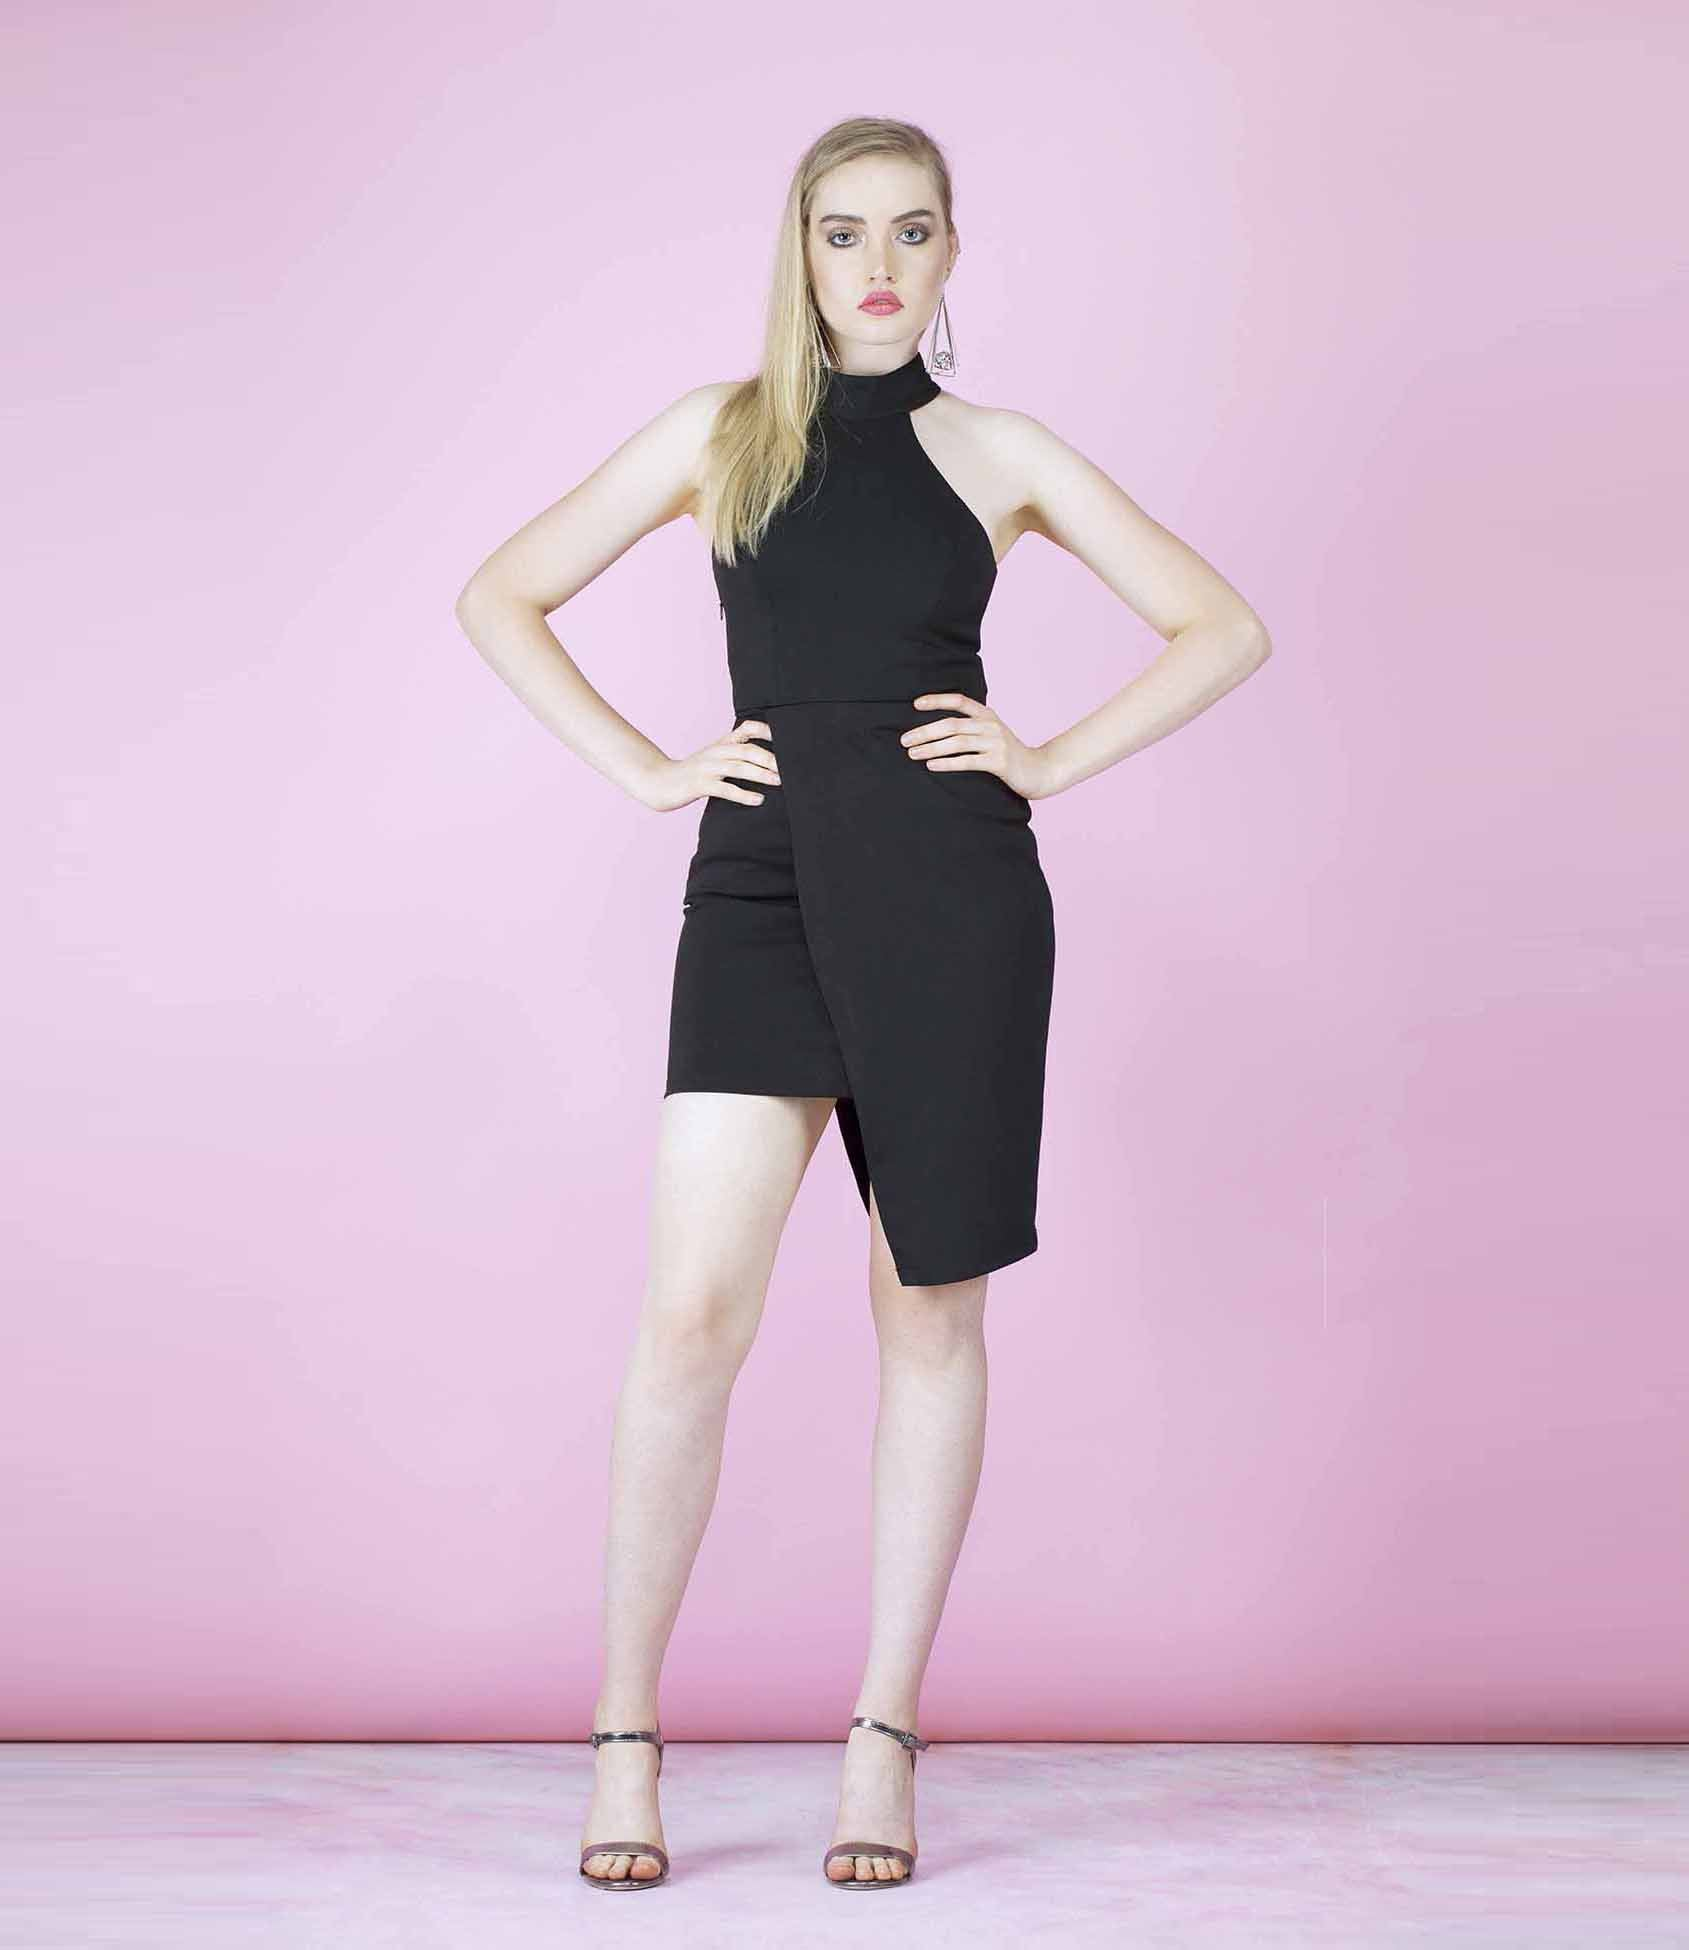 'In The know' Black High Neck Asymmetric Dress